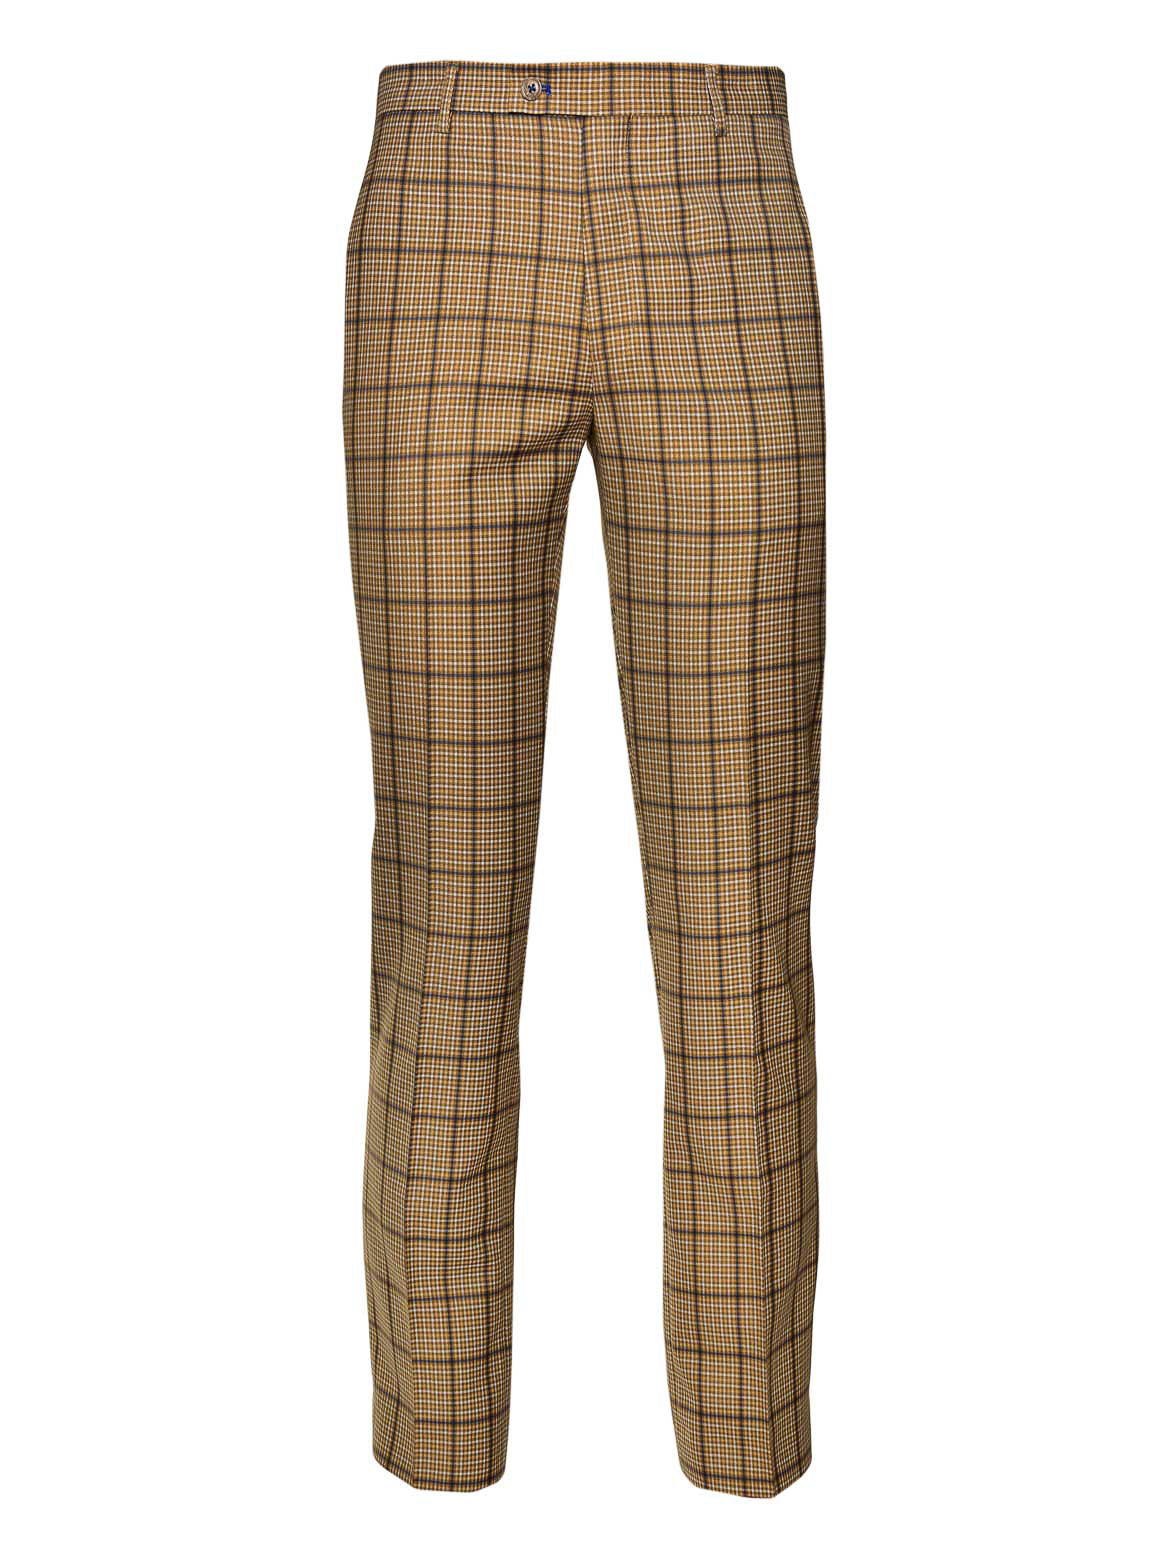 Downing Pants  - Tan Plaid